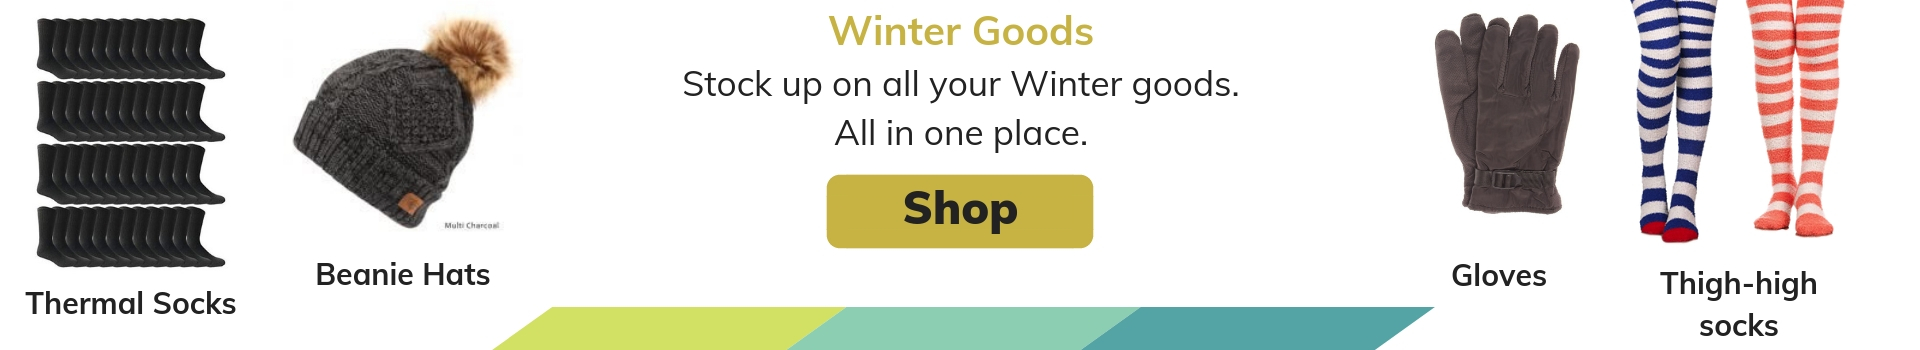 Wholesale Winter Hats, Bulk Winter Gloves, and Bulk thermal socks